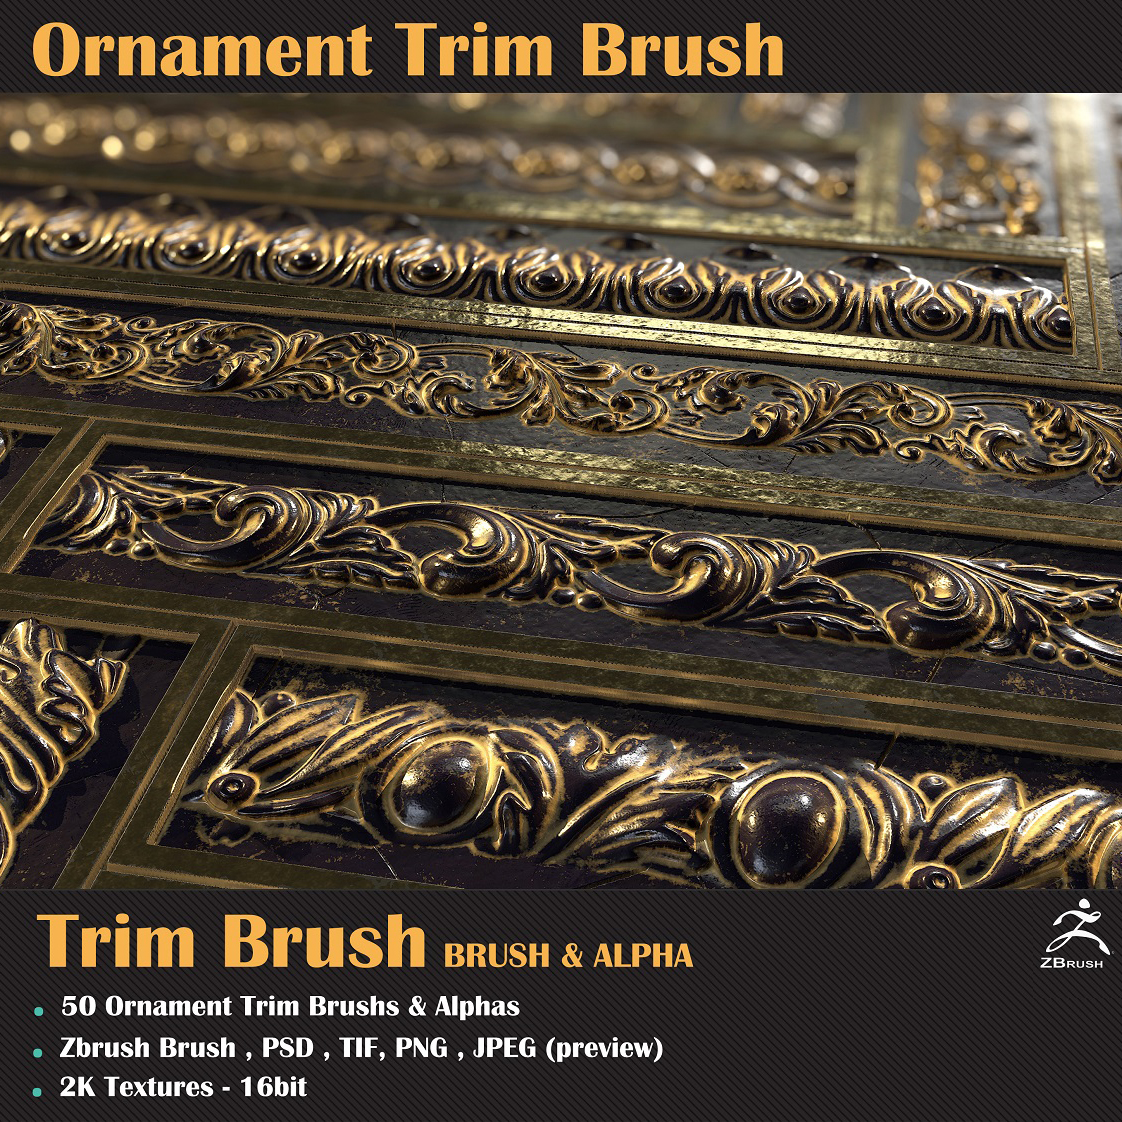 Poster01-Ornament Trim Brush.jpg